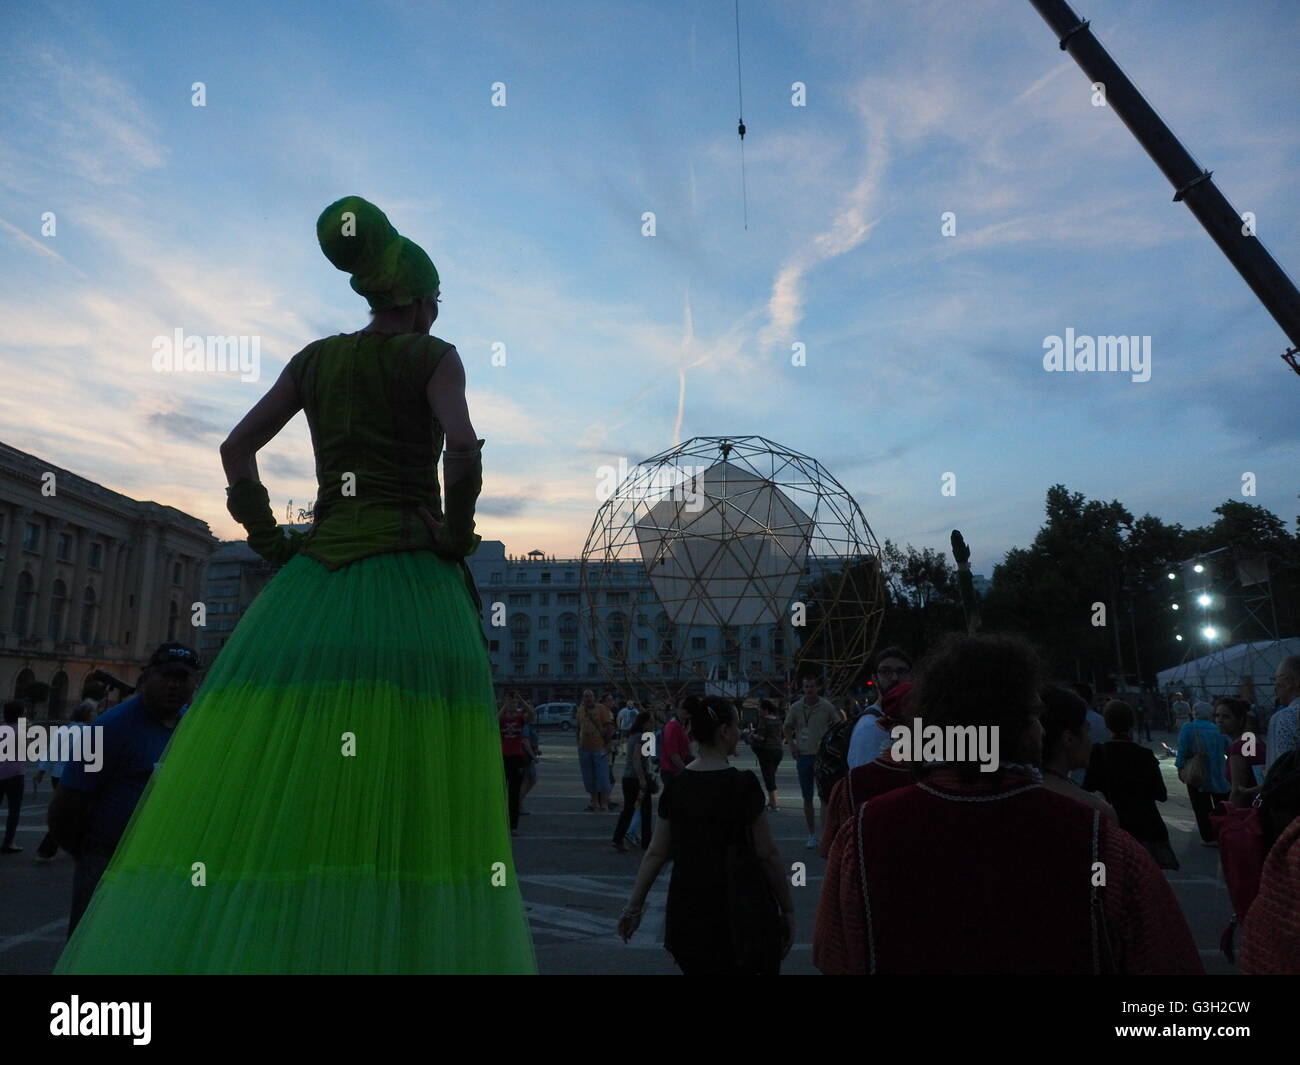 Bucharest, Romania. 12th June 2016. An artist performs in the streets of Bucharest during B-Fit Feestival. B-Fit - Stock Image